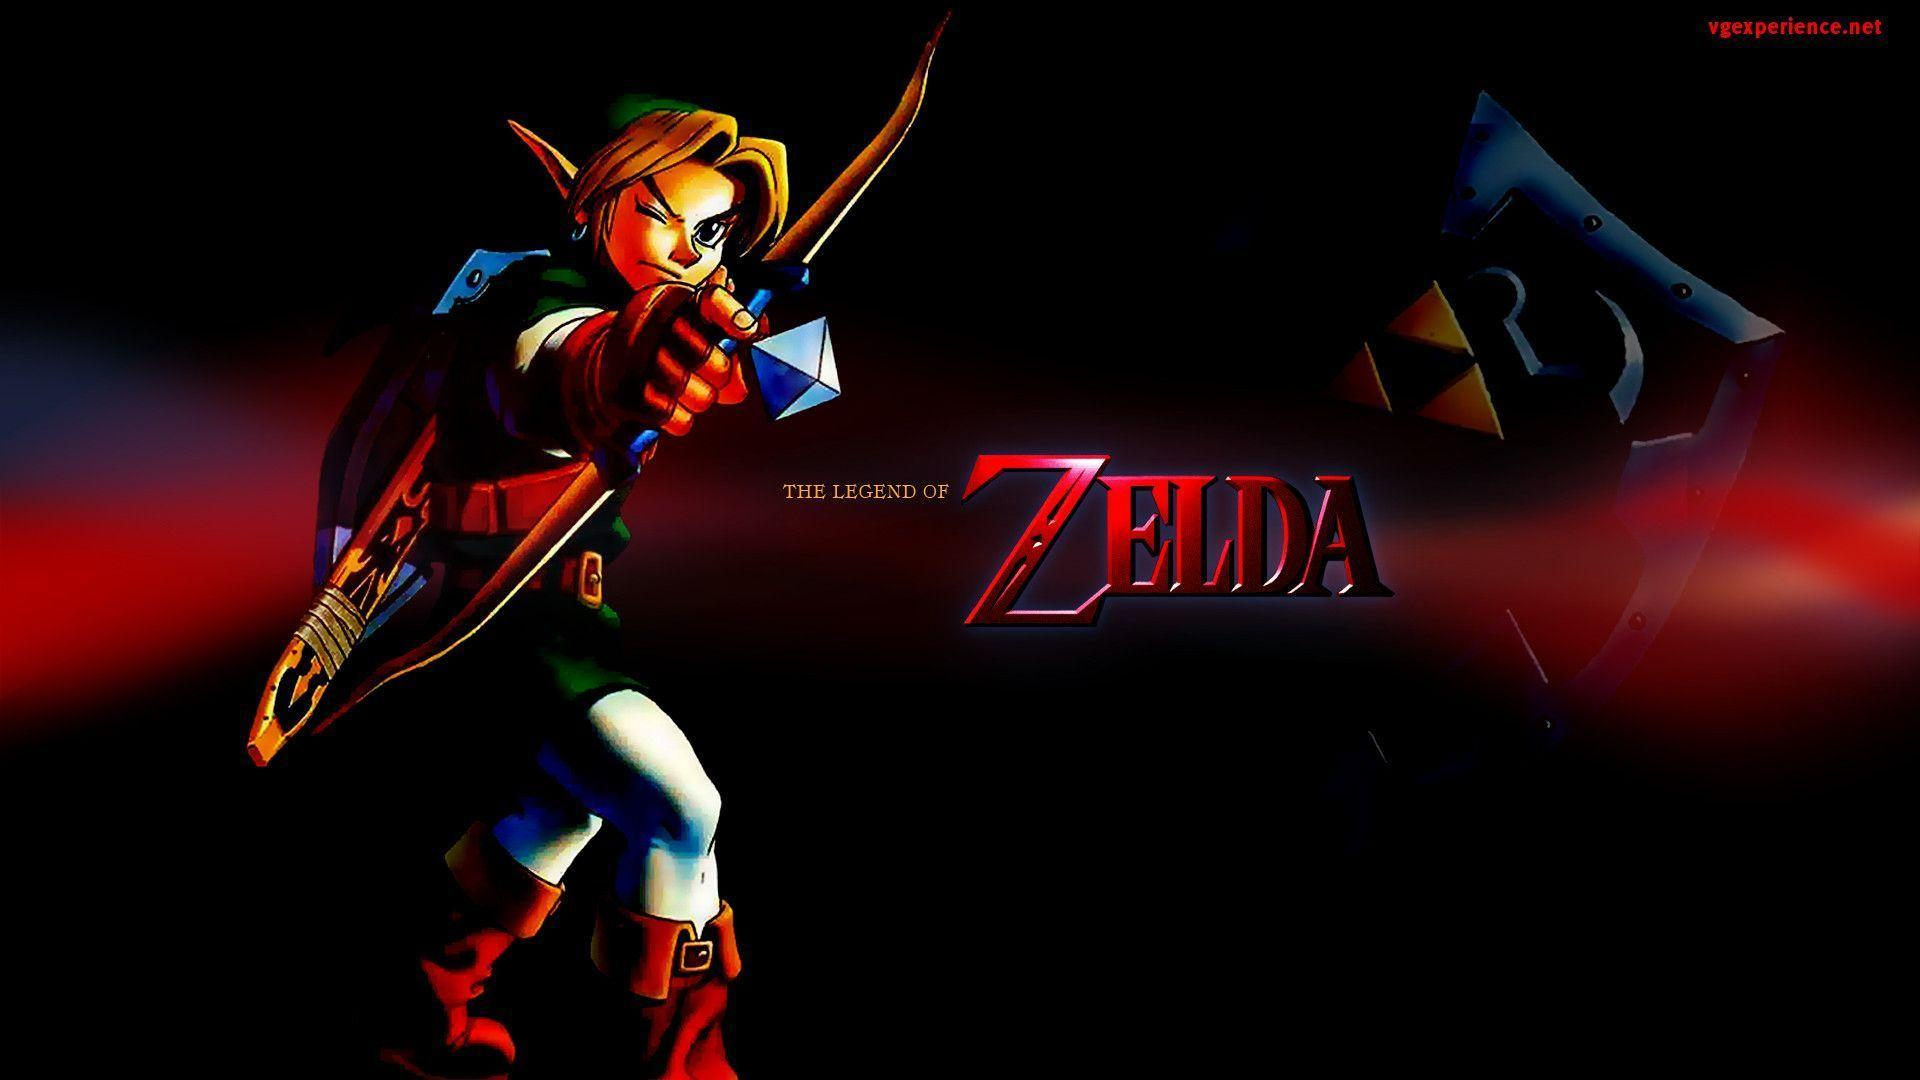 44 The Legend Of Zelda: Ocarina Of Time Wallpapers